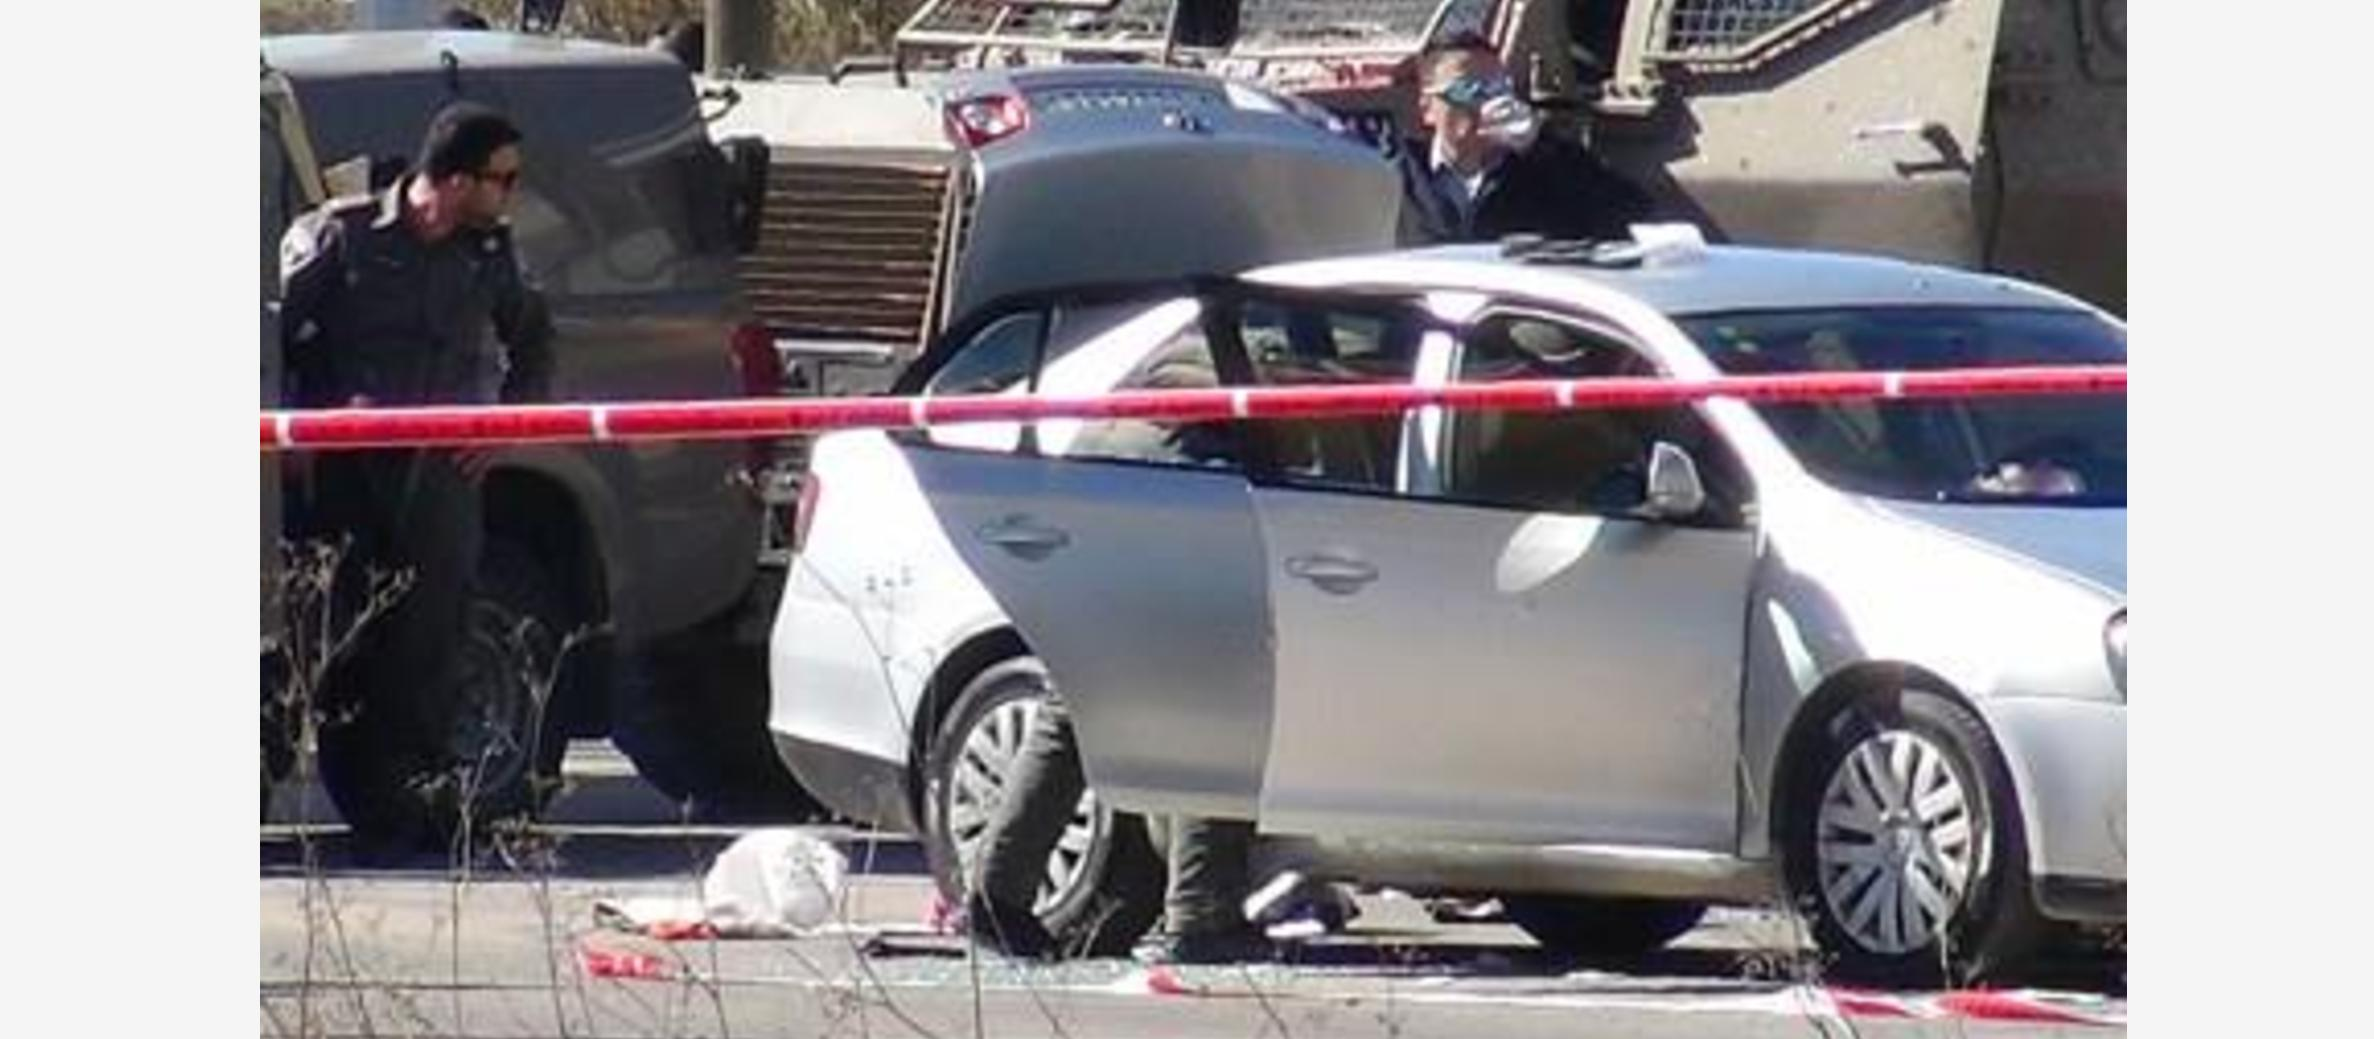 Israel steps up security at Ramallah entrance after Palestinian police officer opens fire injuring three